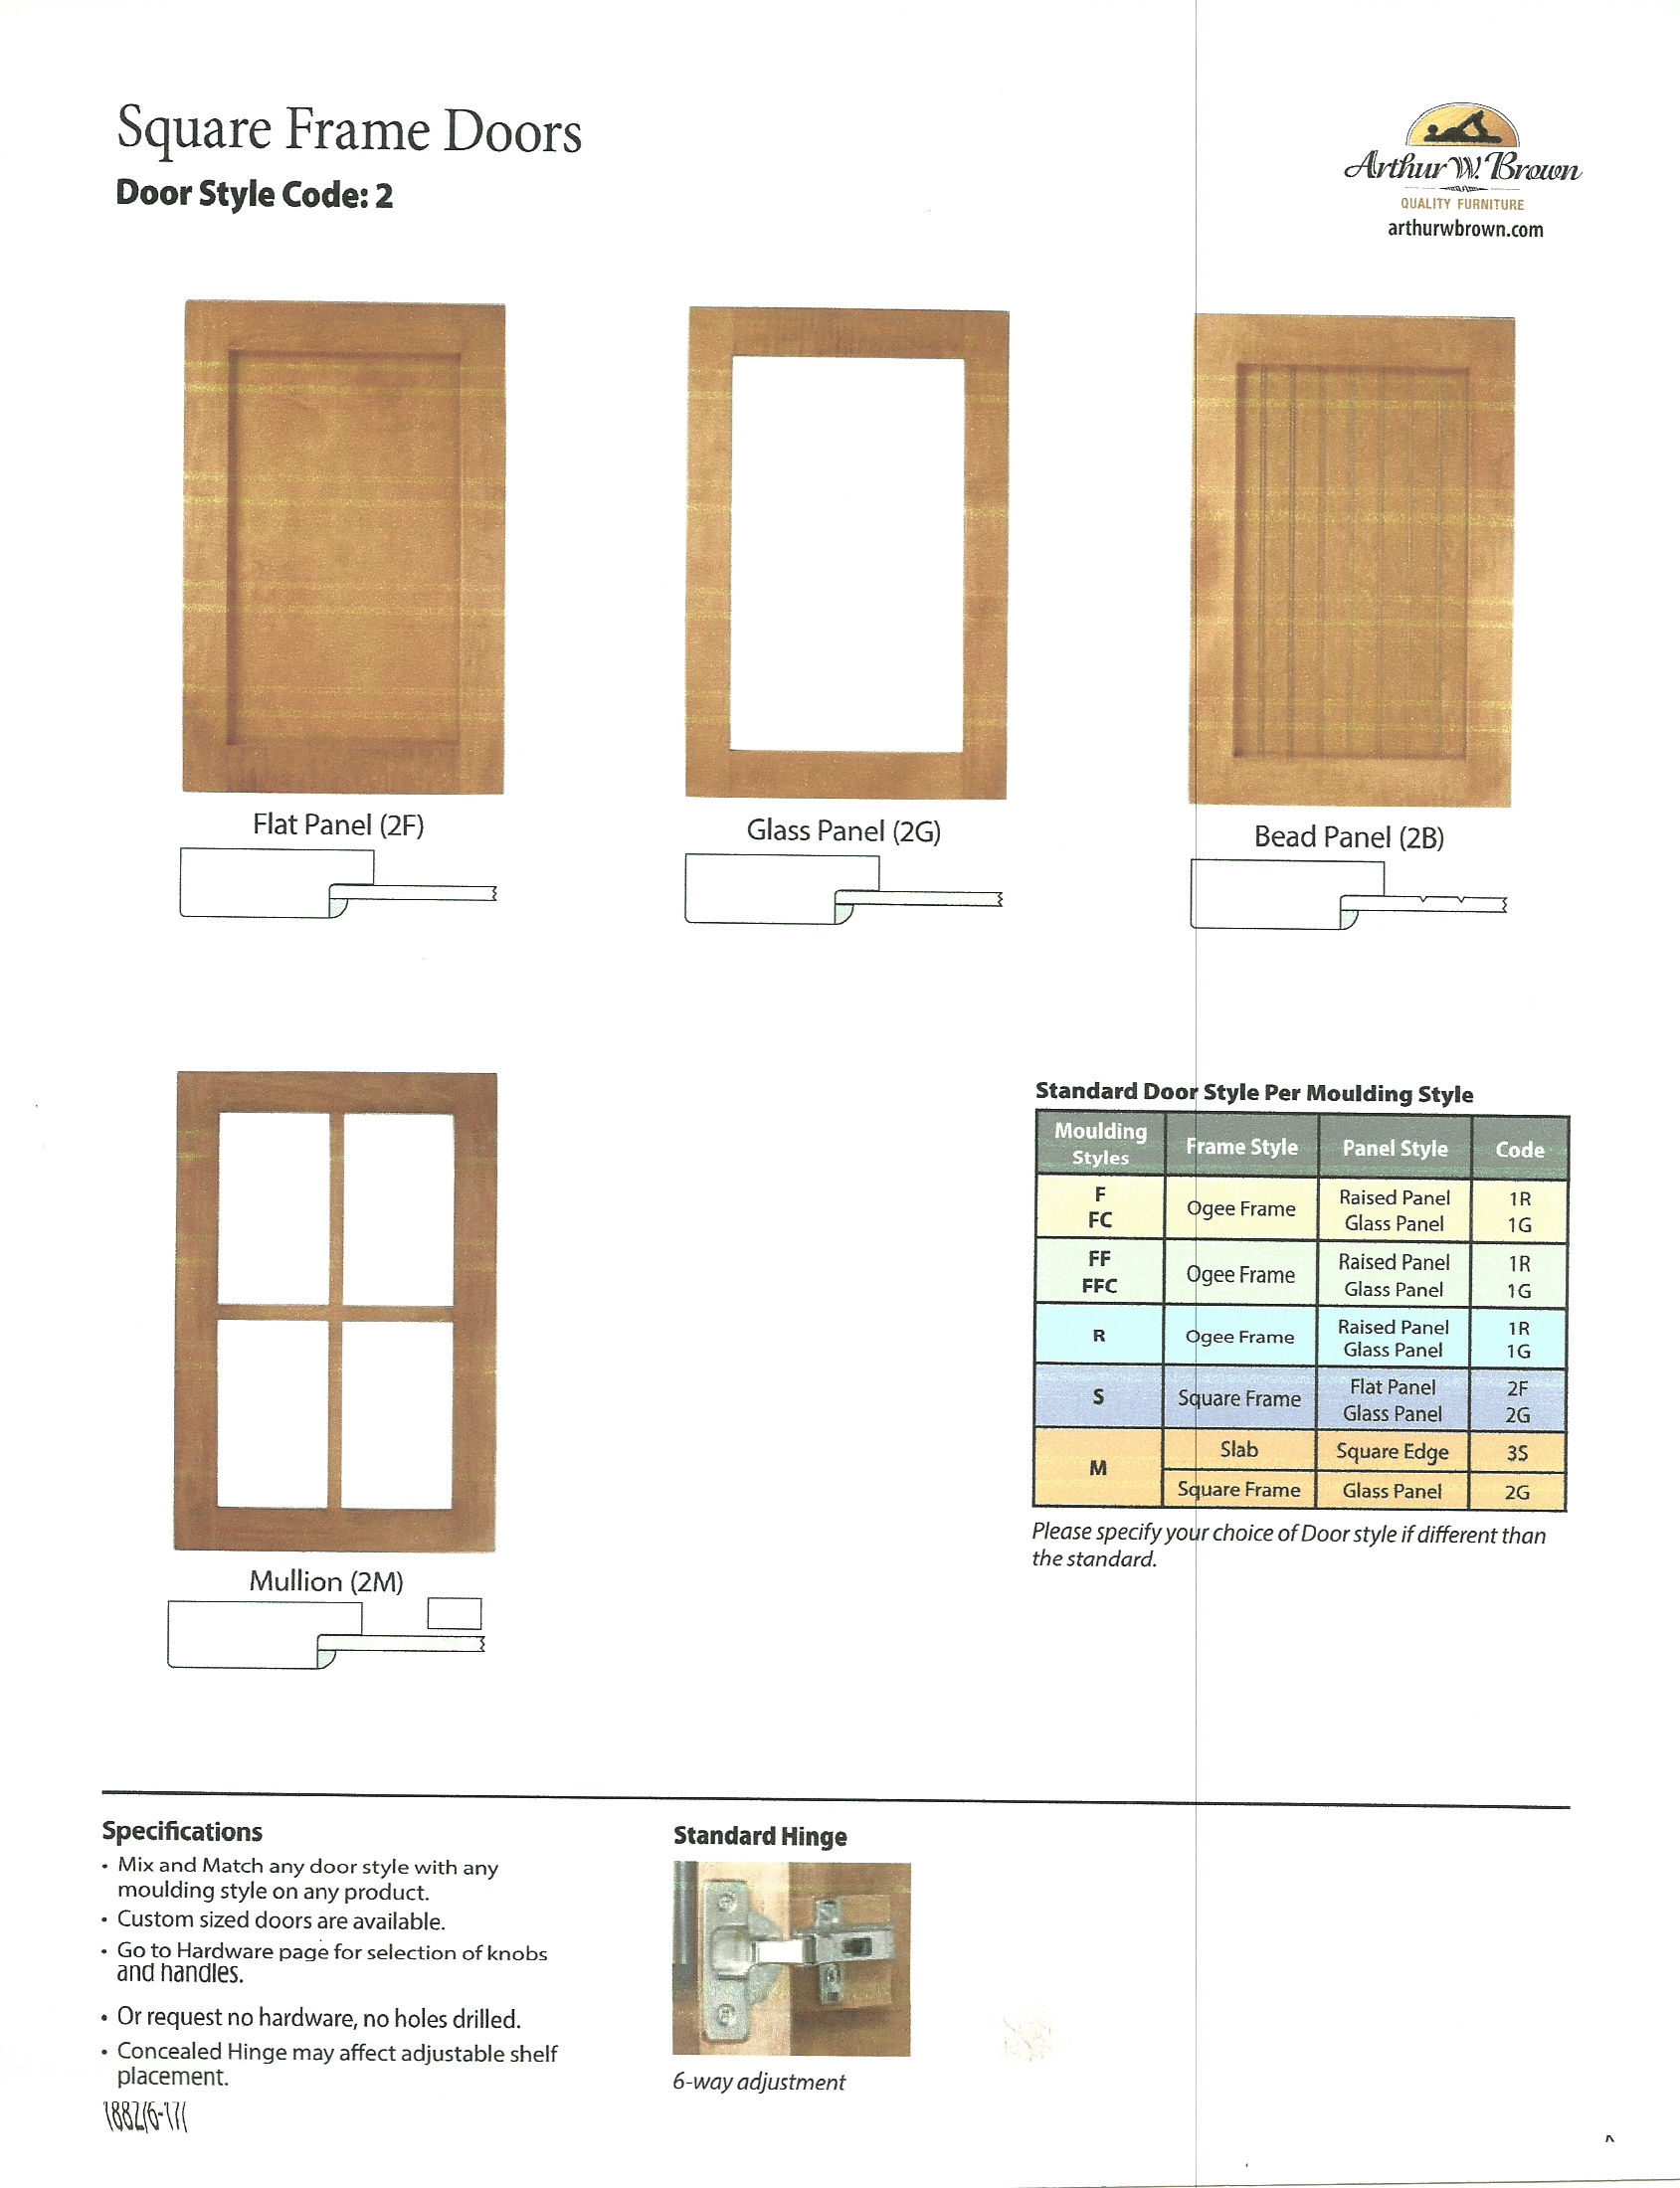 Square Frame Doors Options